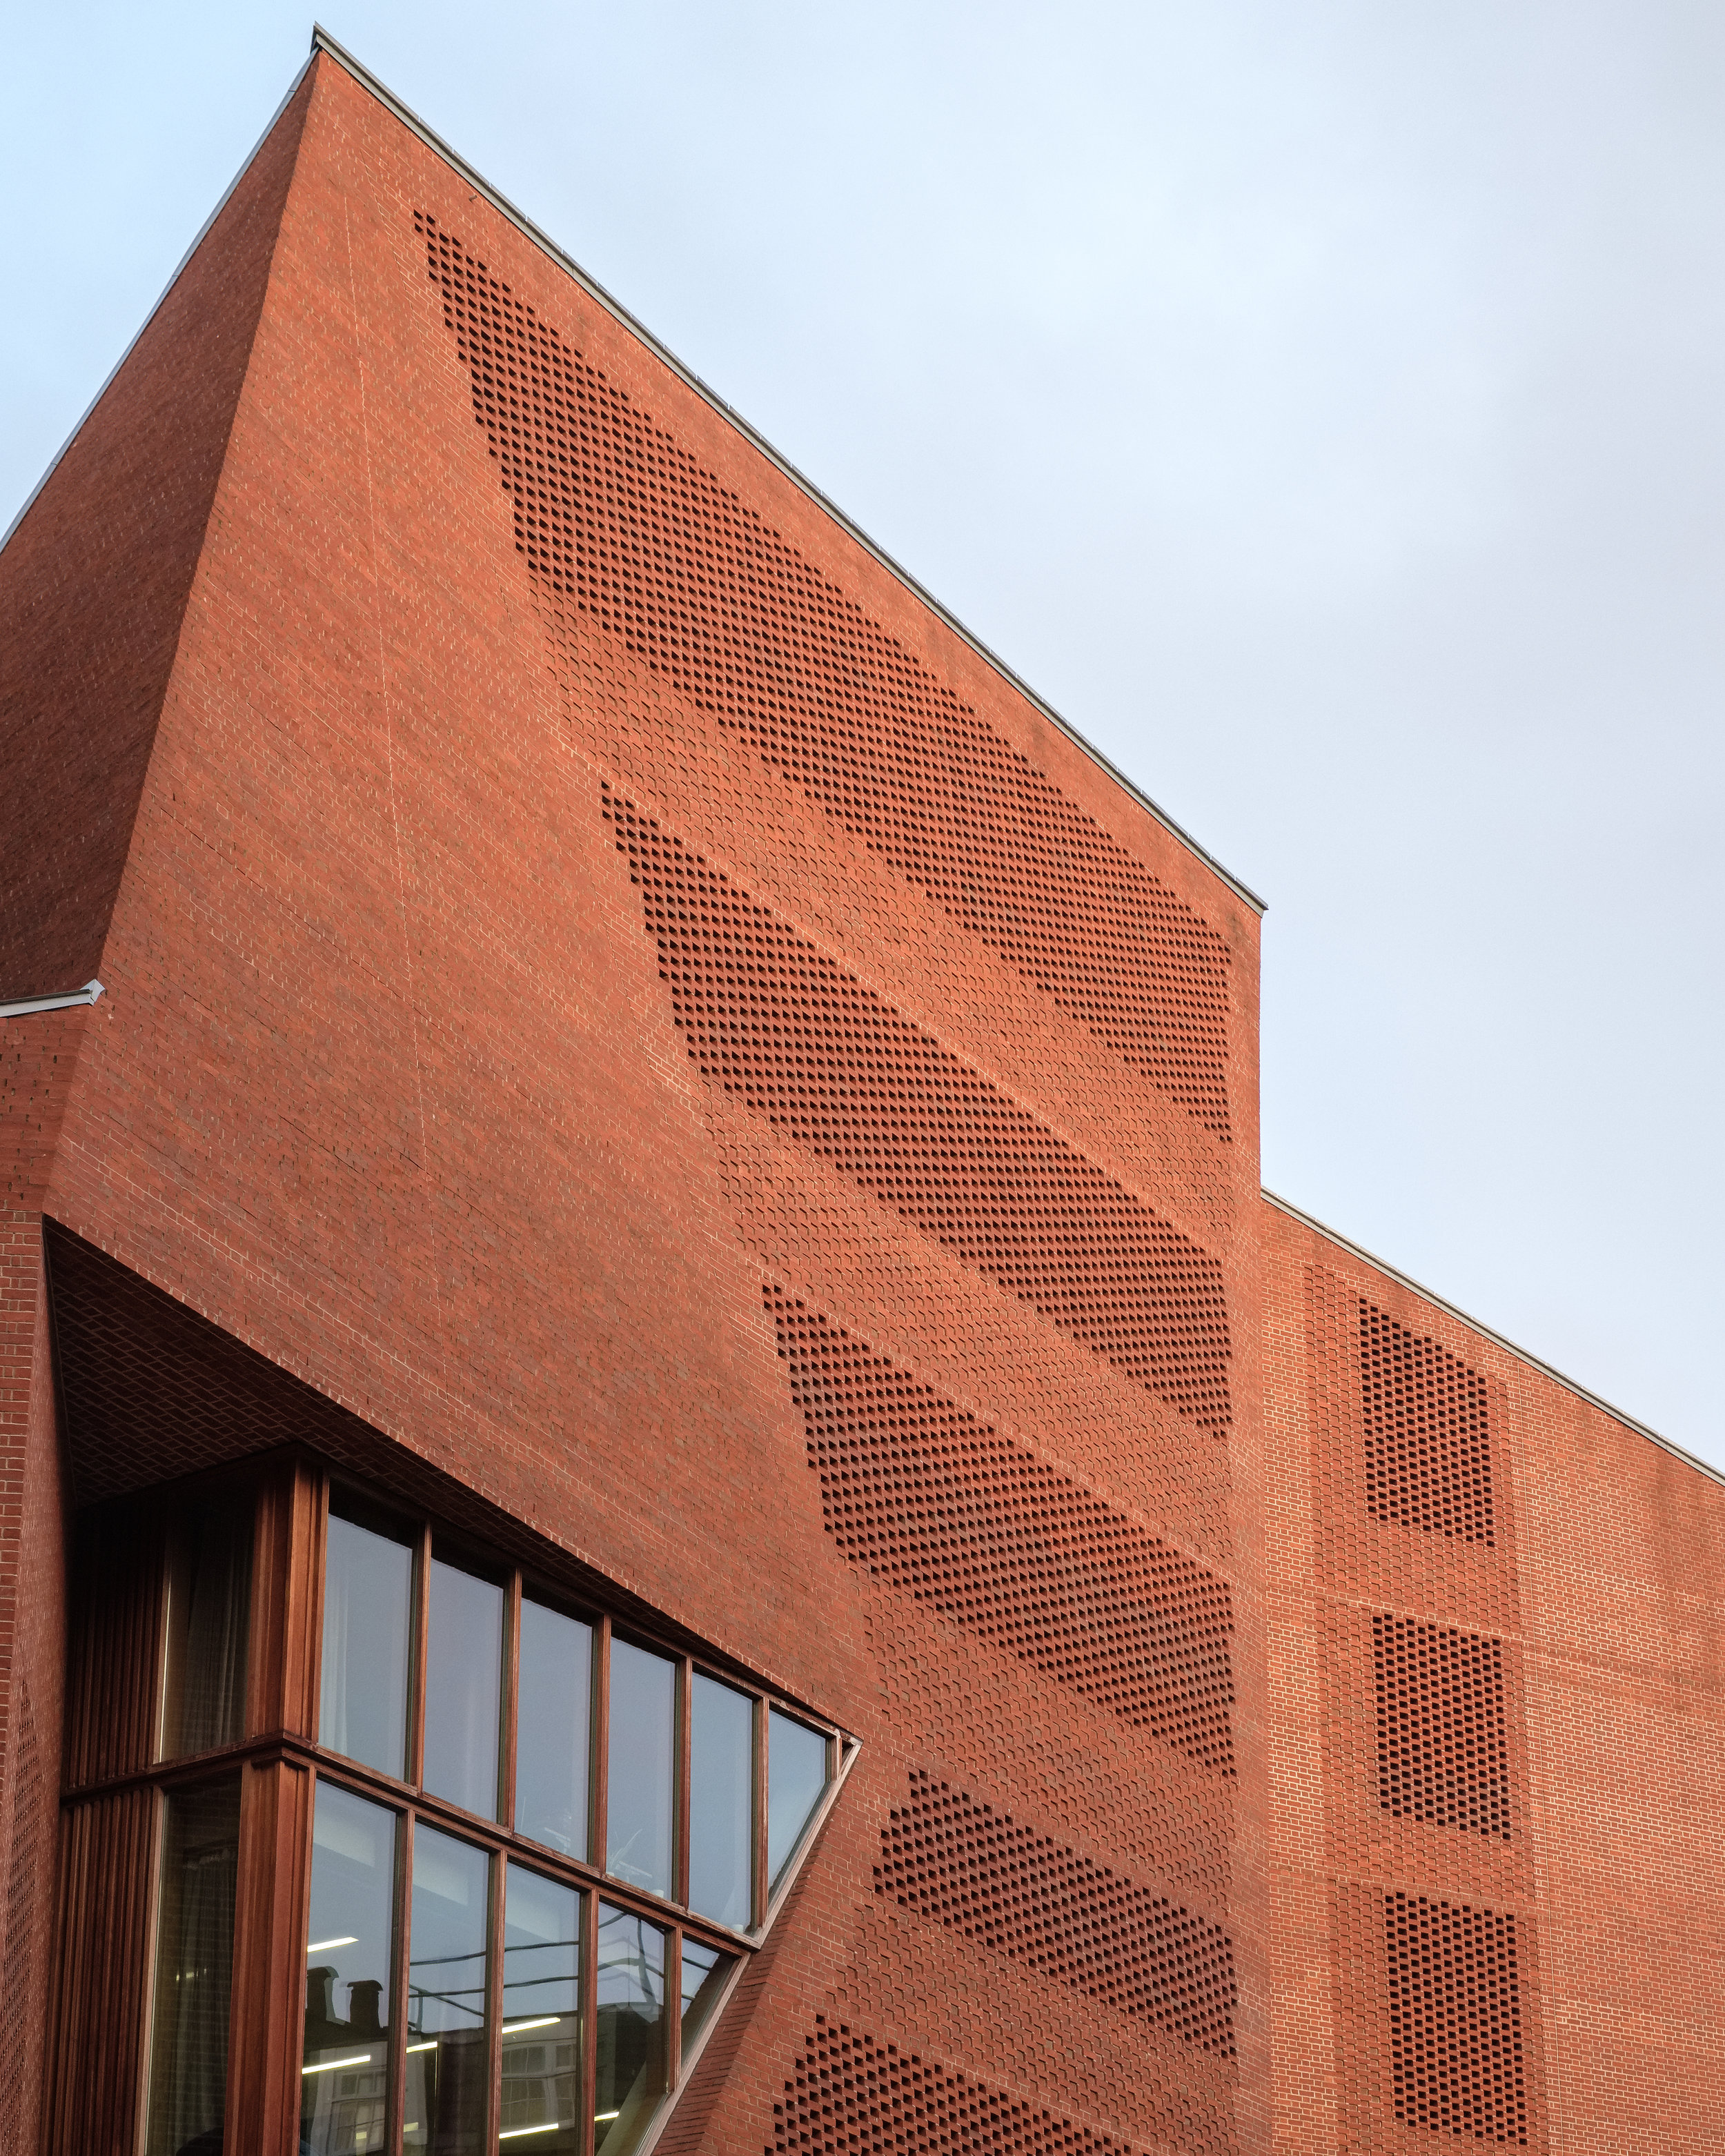 Fred+Howarth+Photography_LSE+Saw+Hock+Building_-2.jpg